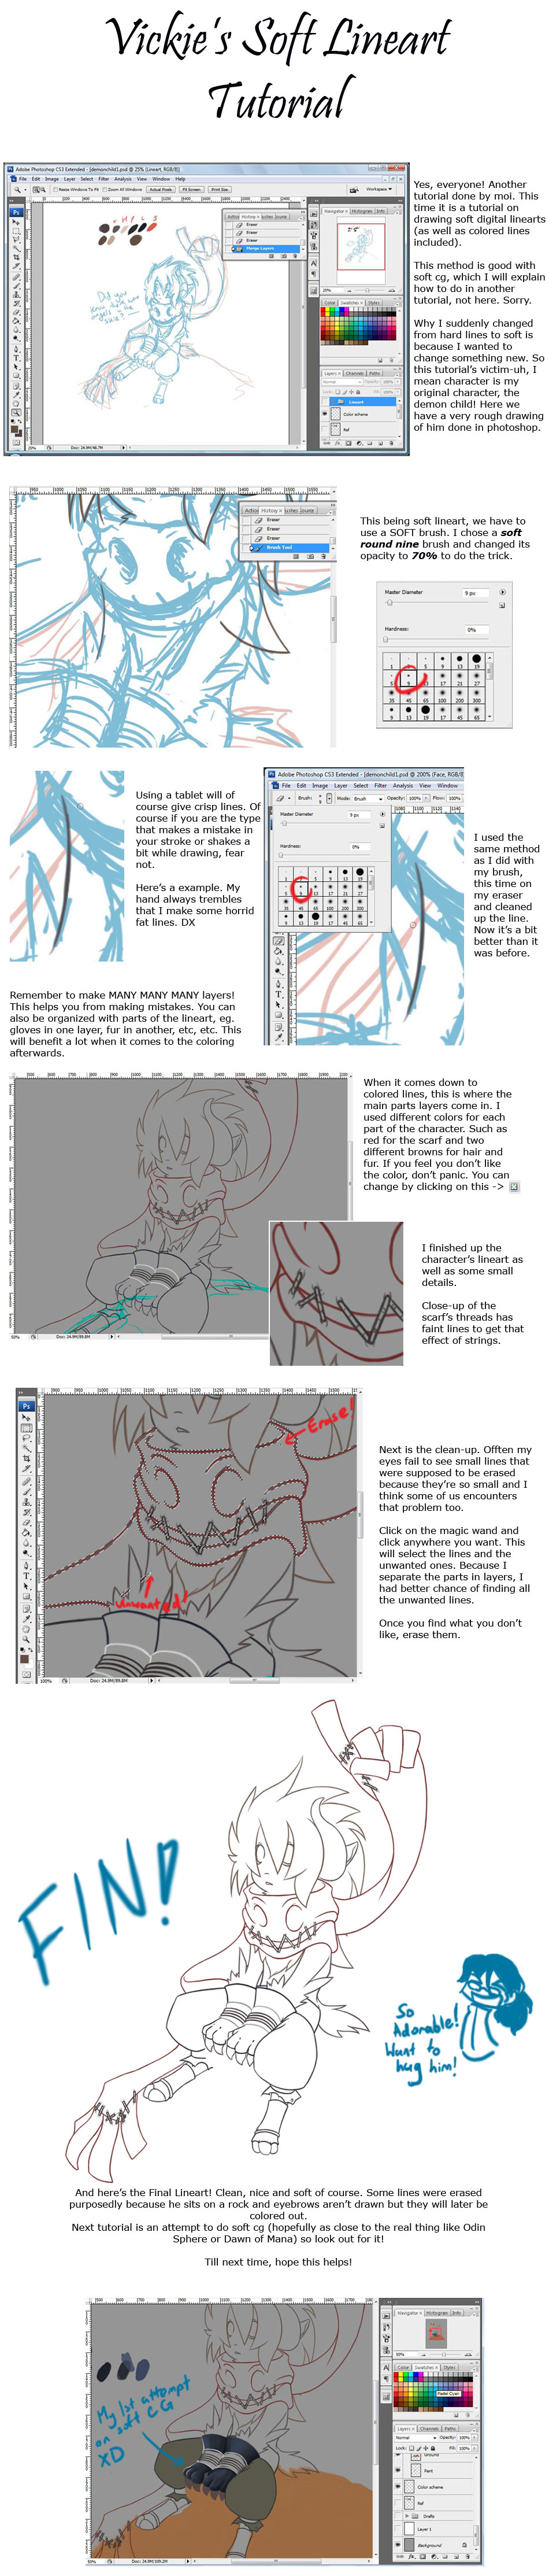 Soft lineart tutorial by vickie believe on deviantart soft lineart tutorial by vickie believe baditri Choice Image